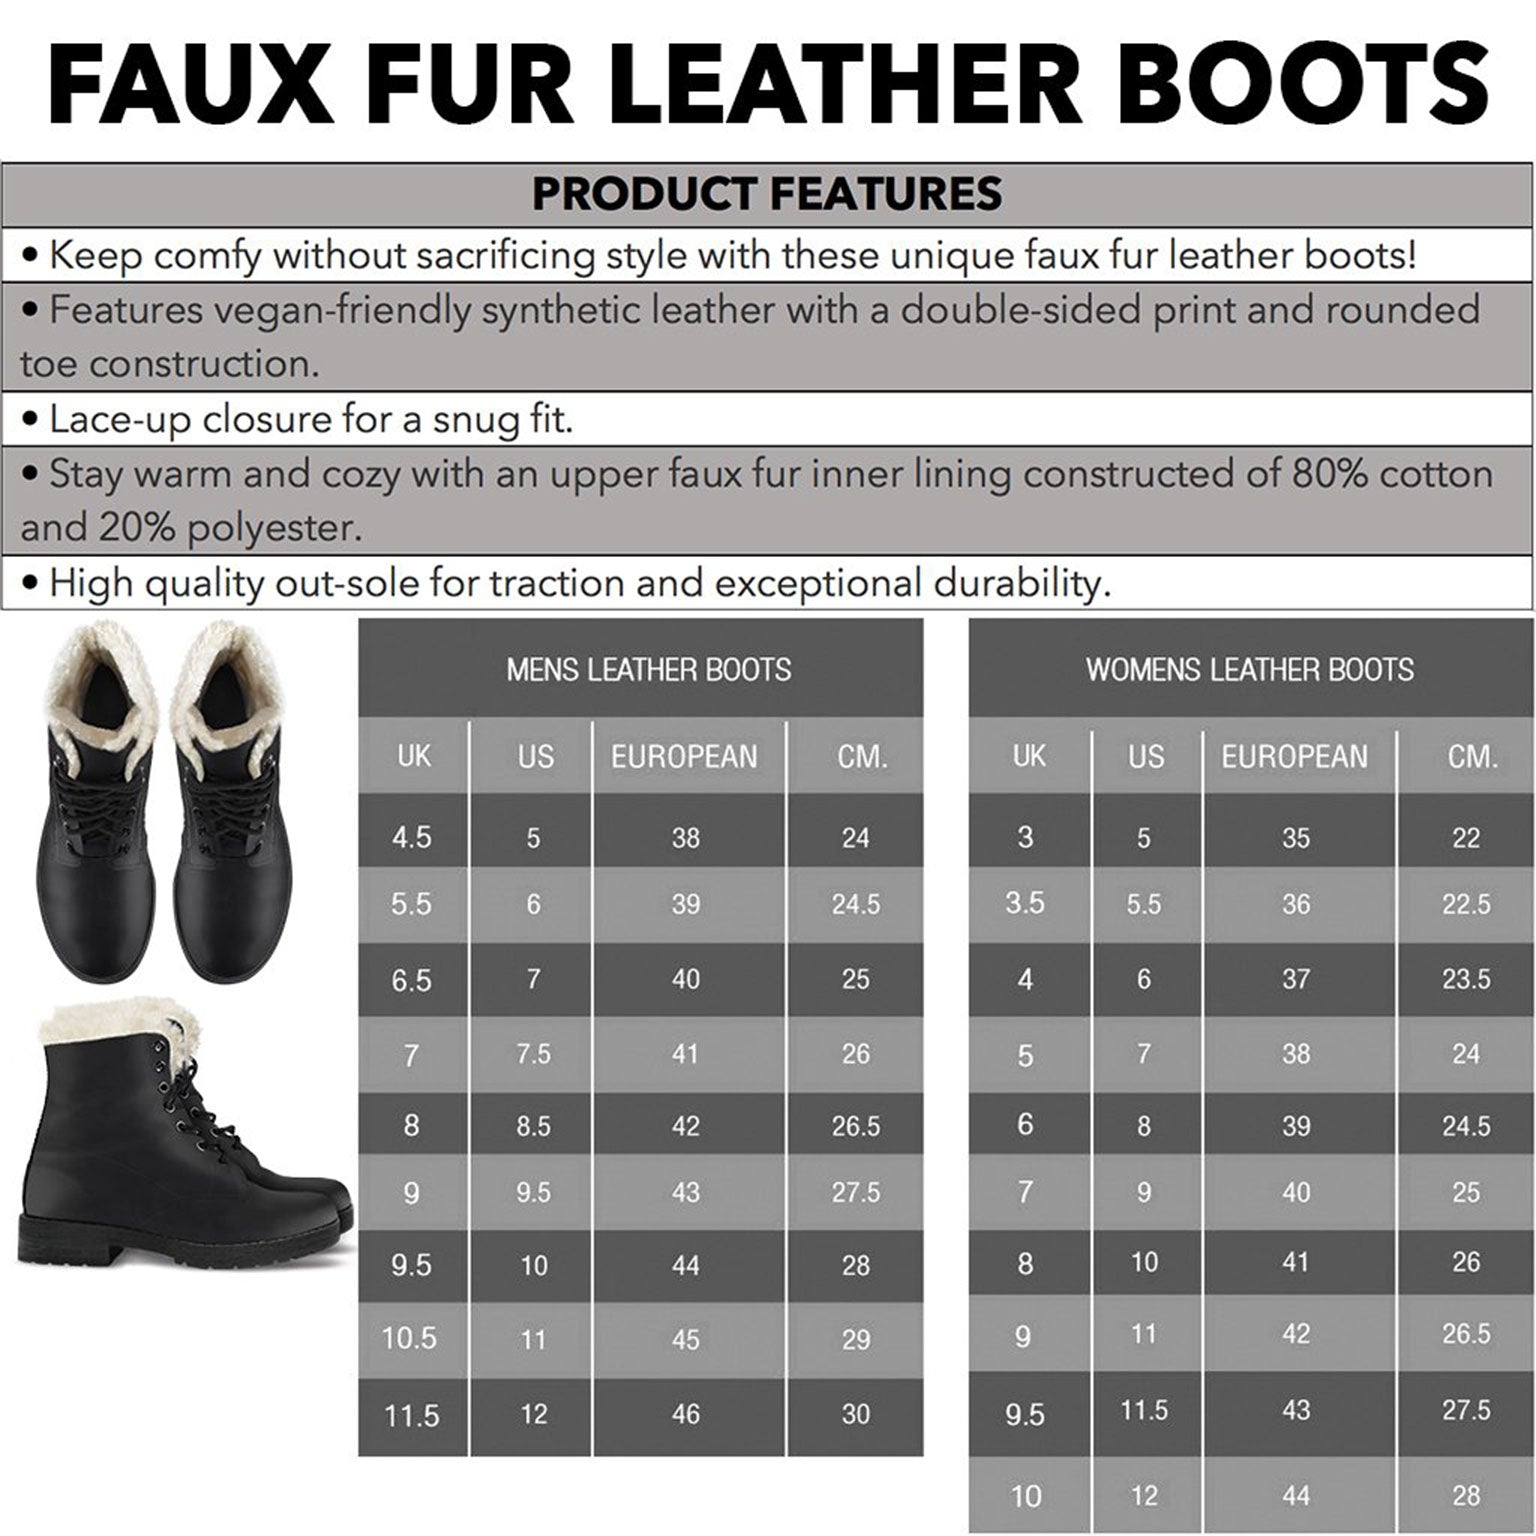 Tartan Faux Fur Leather Boots Product Details and Sizing